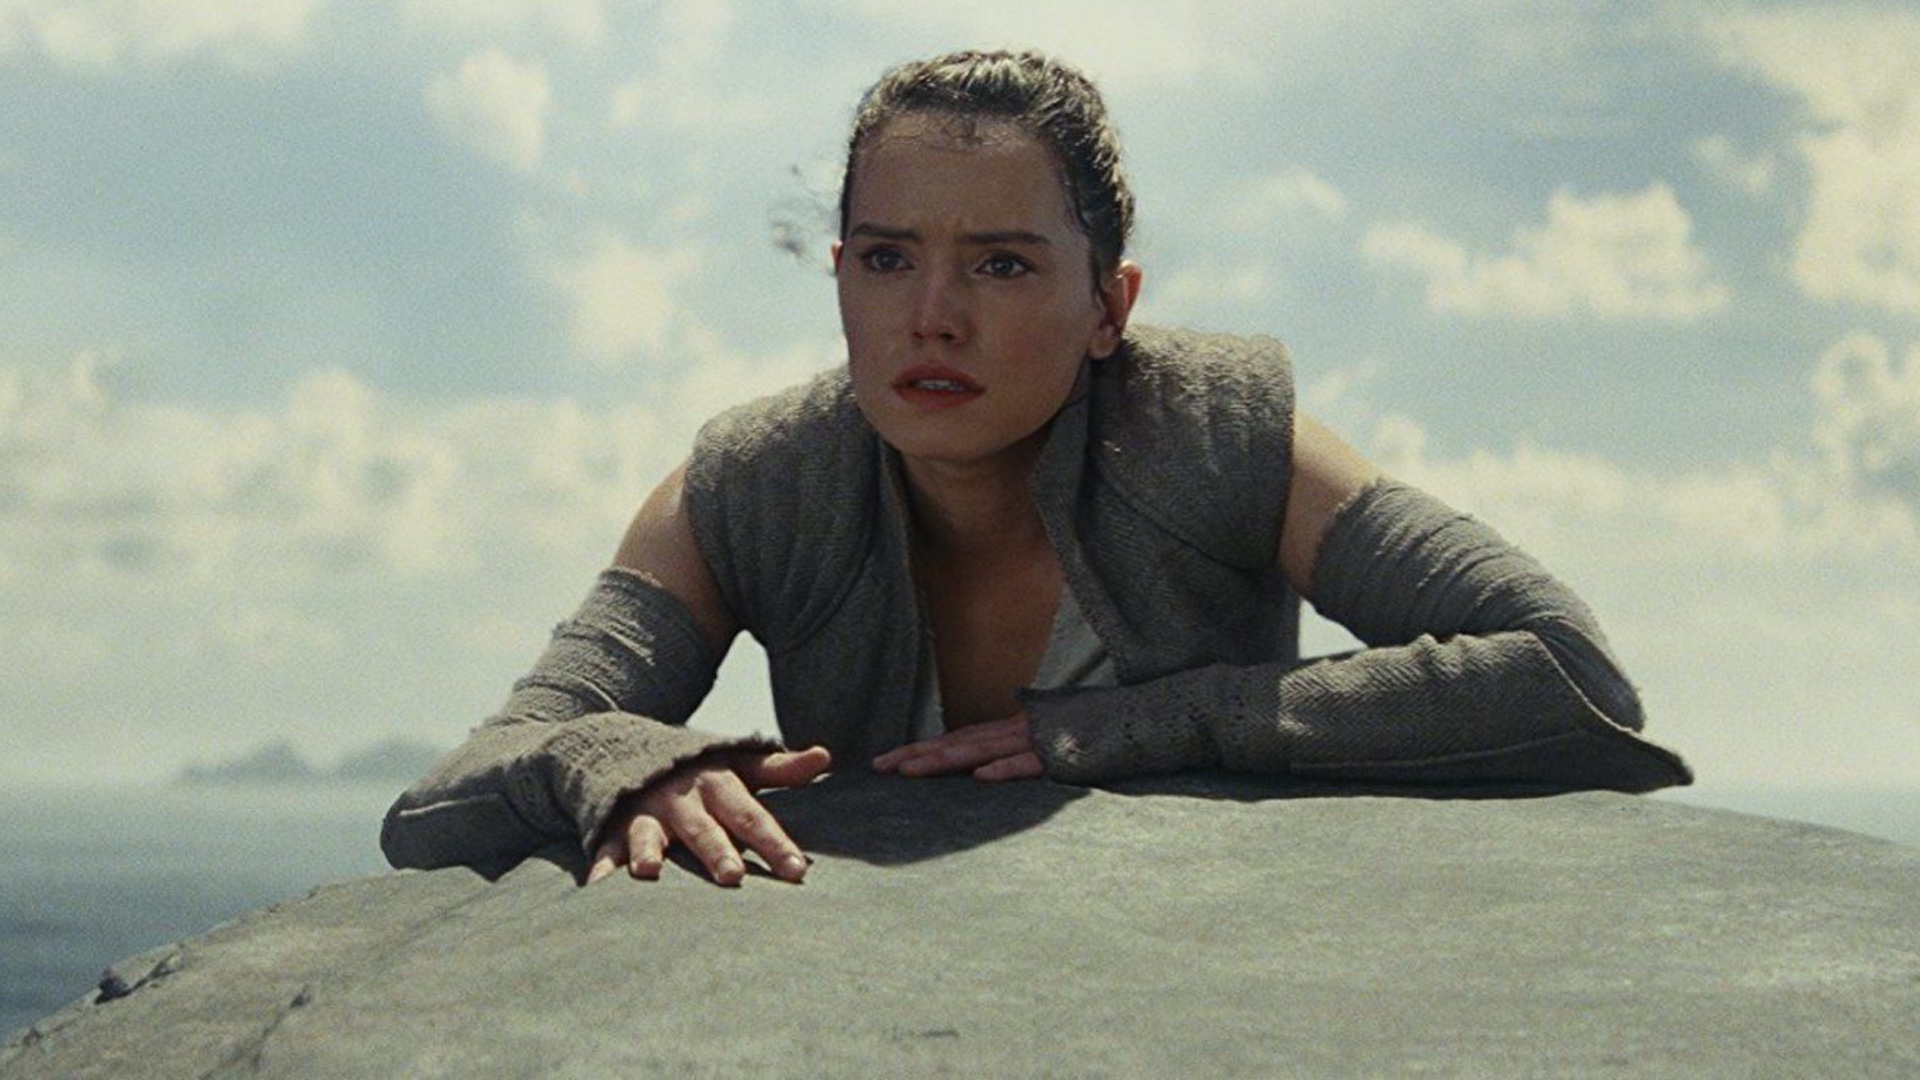 star-wars-movies-will-go-on-hiatus-after-star-wars-episode-ix-is-released-social.jpg